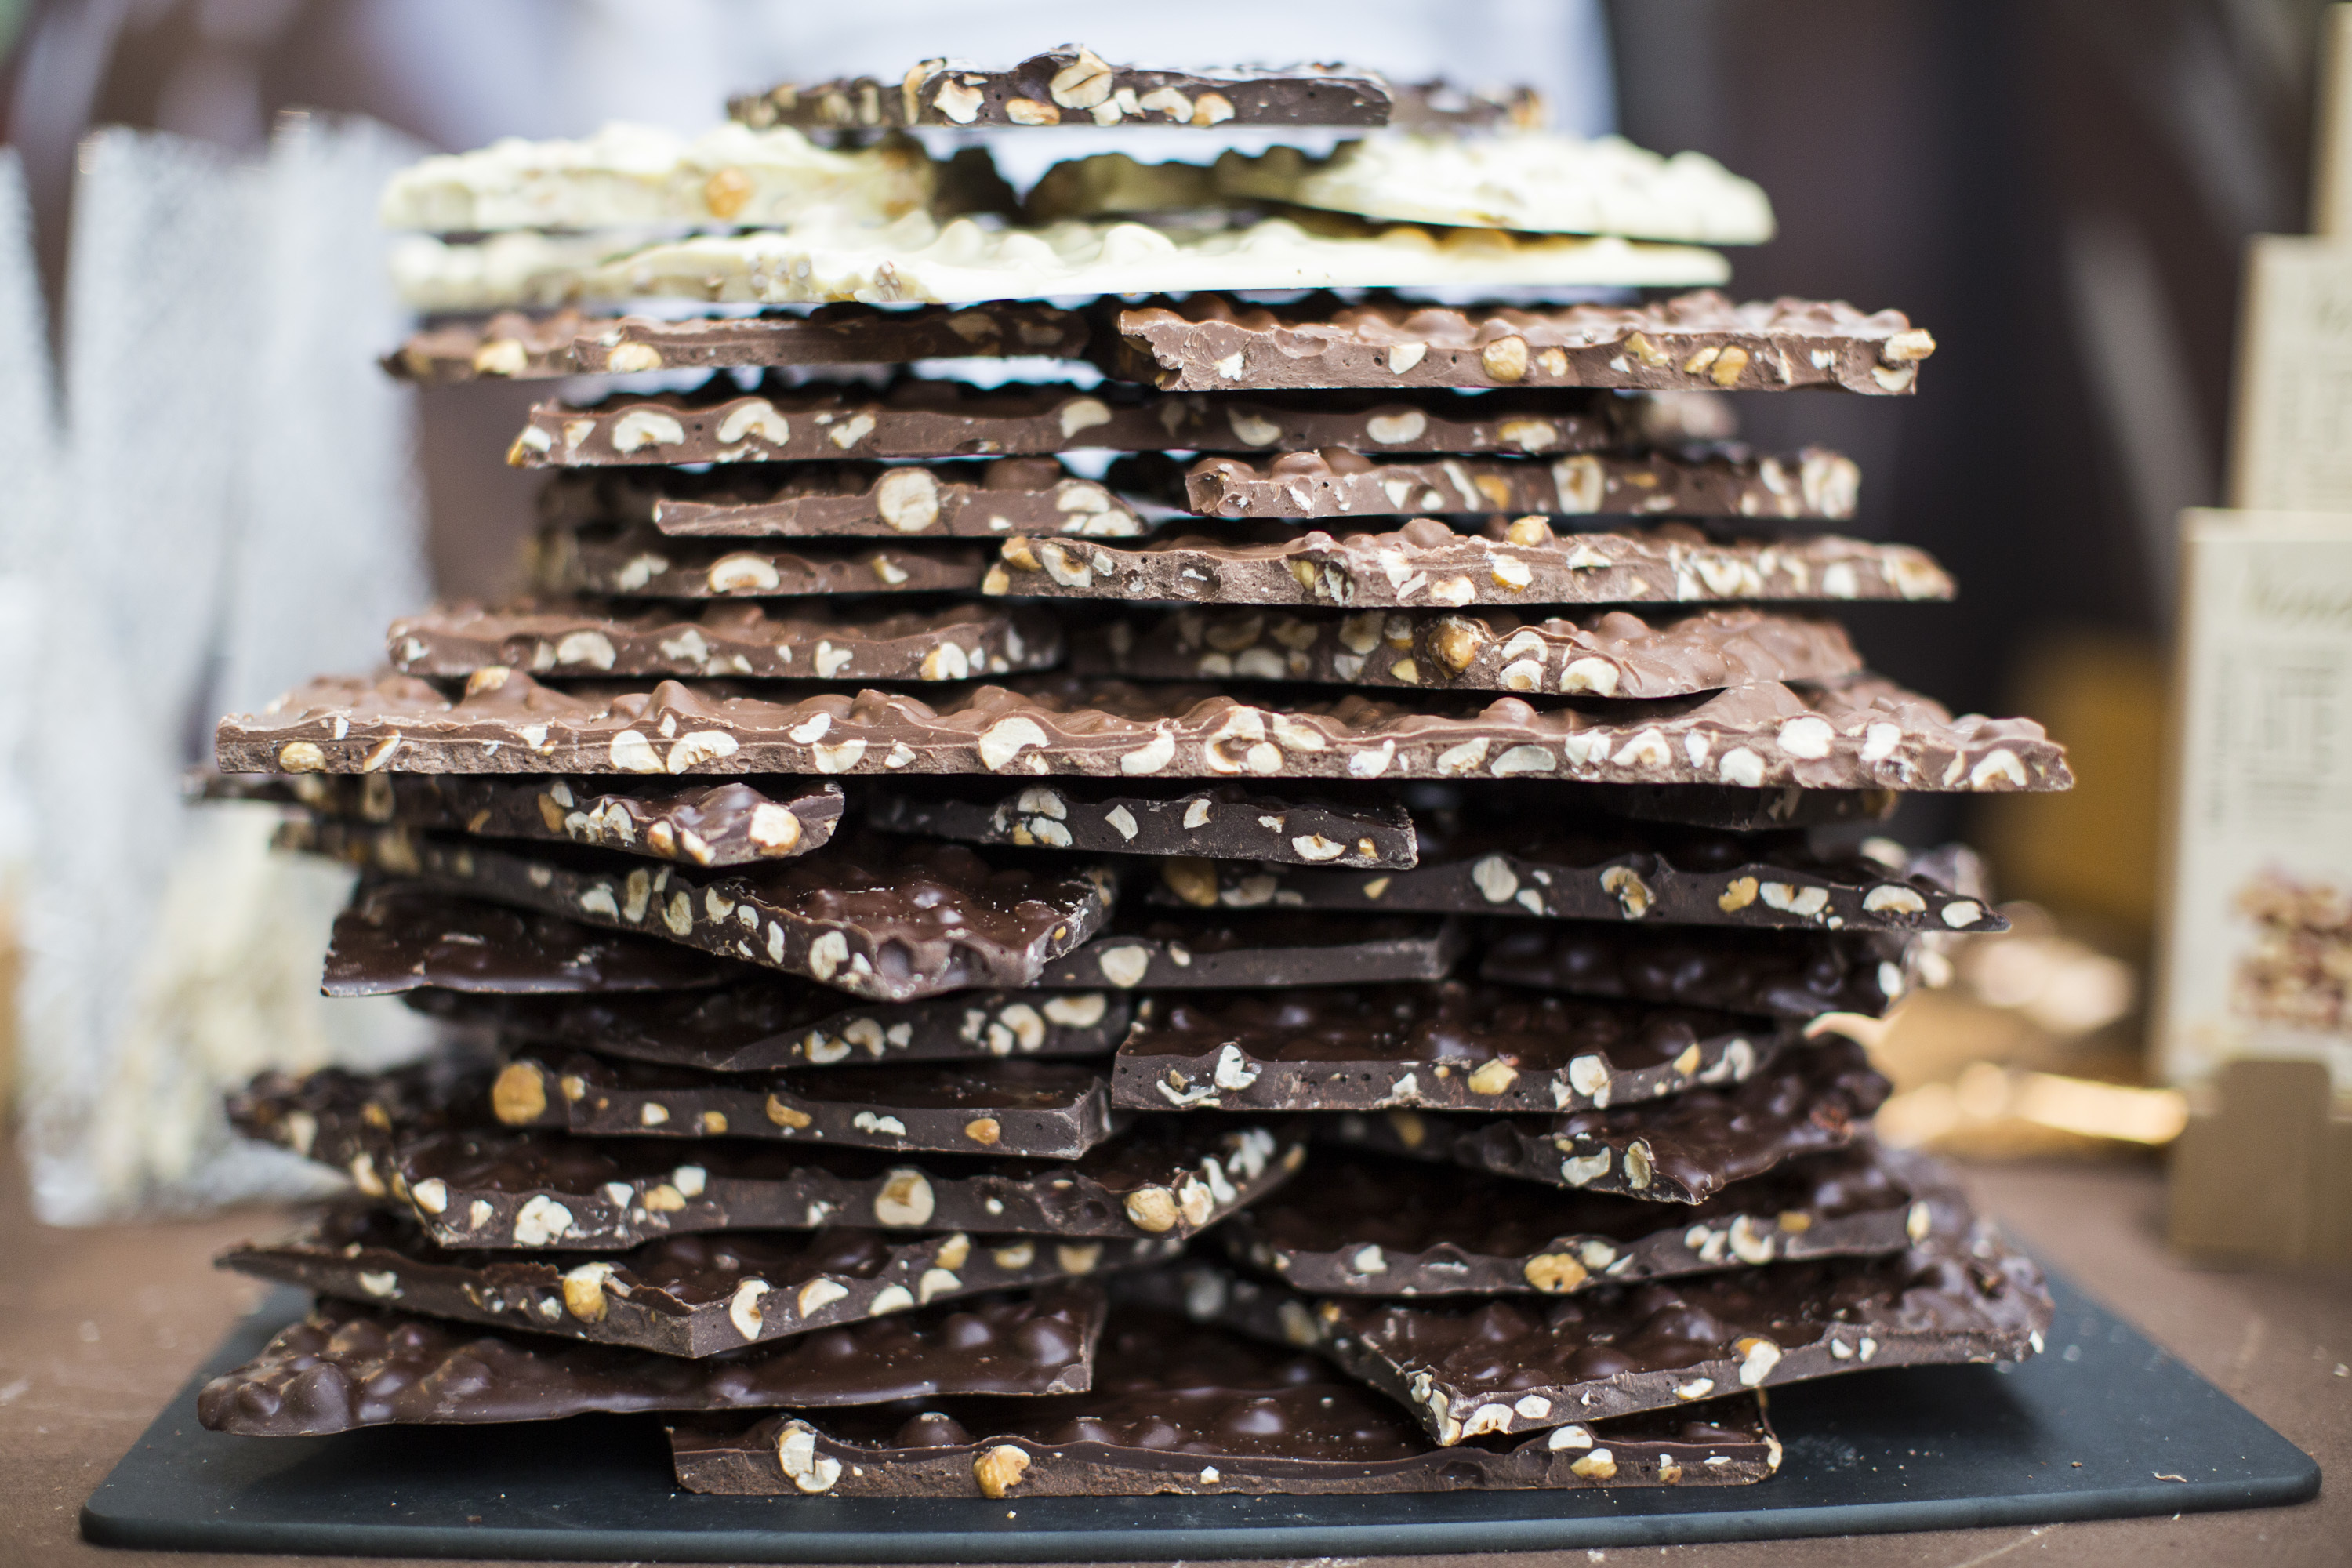 The Chocolate Show at Olympia National Hall